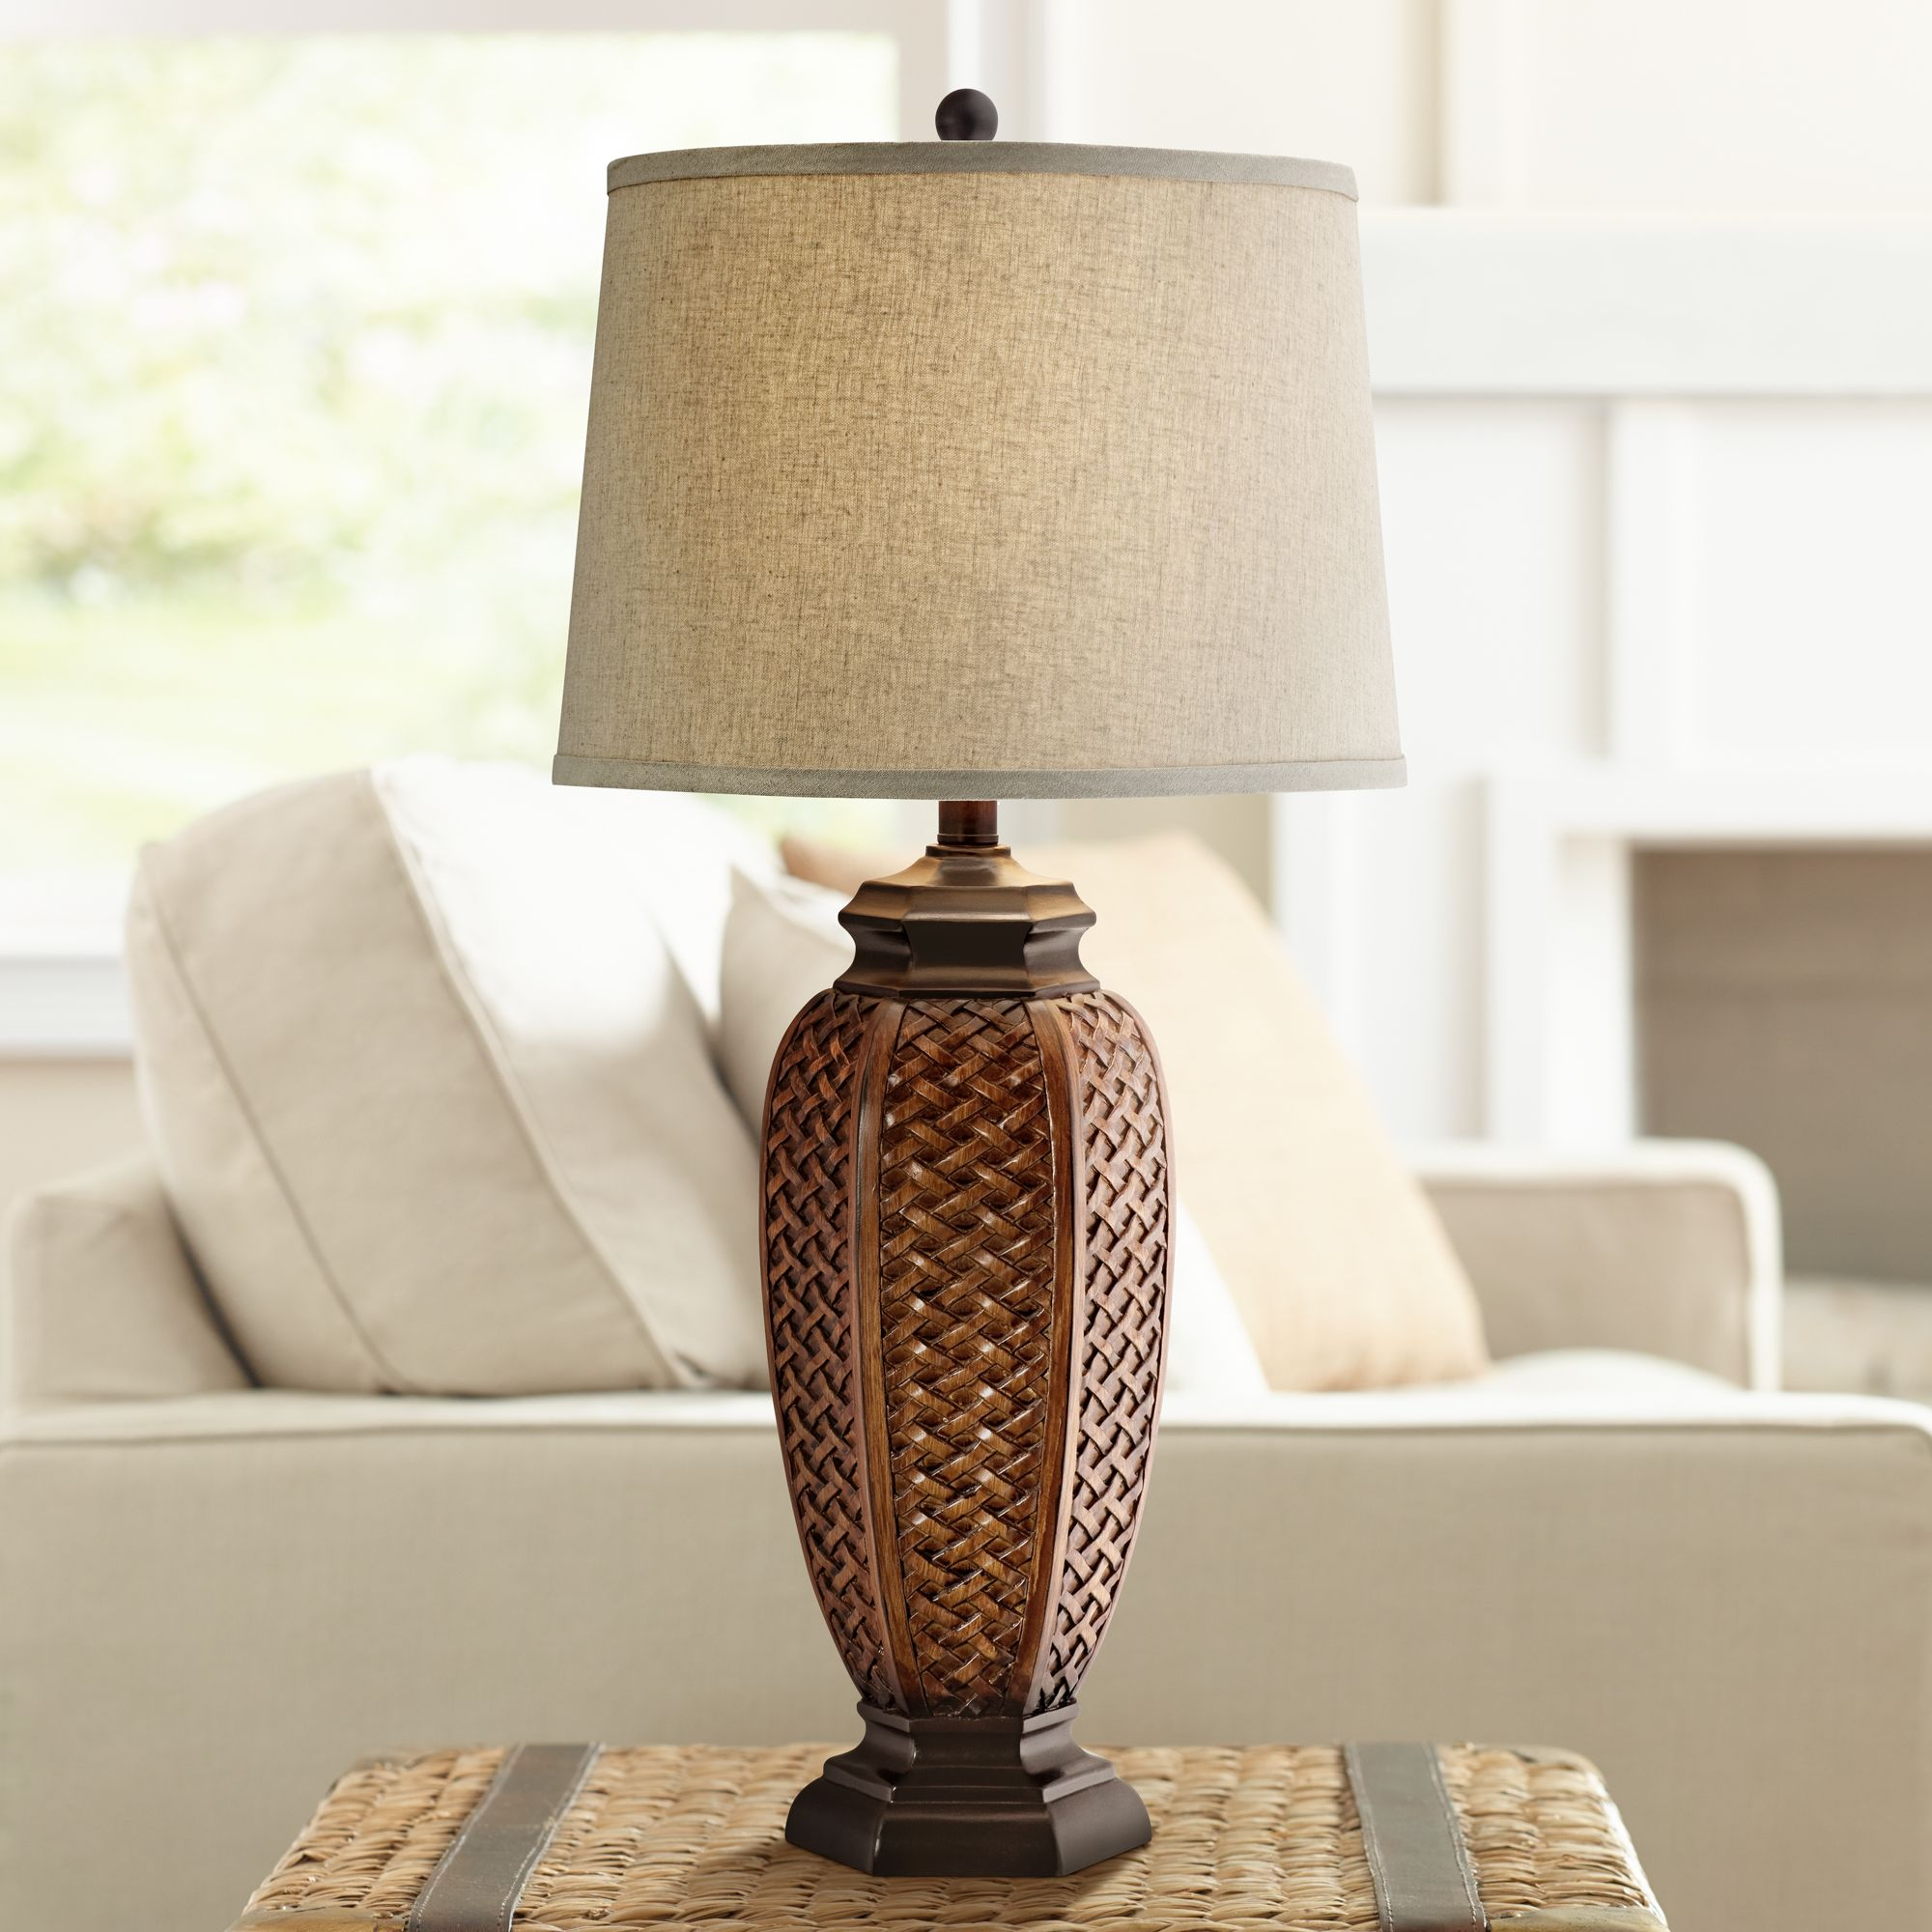 Regency Hill Tropical Table Lamp Woven Wicker Pattern Beige Linen Drum Shade for Living Room Family Bedroom Bedside Nightstand